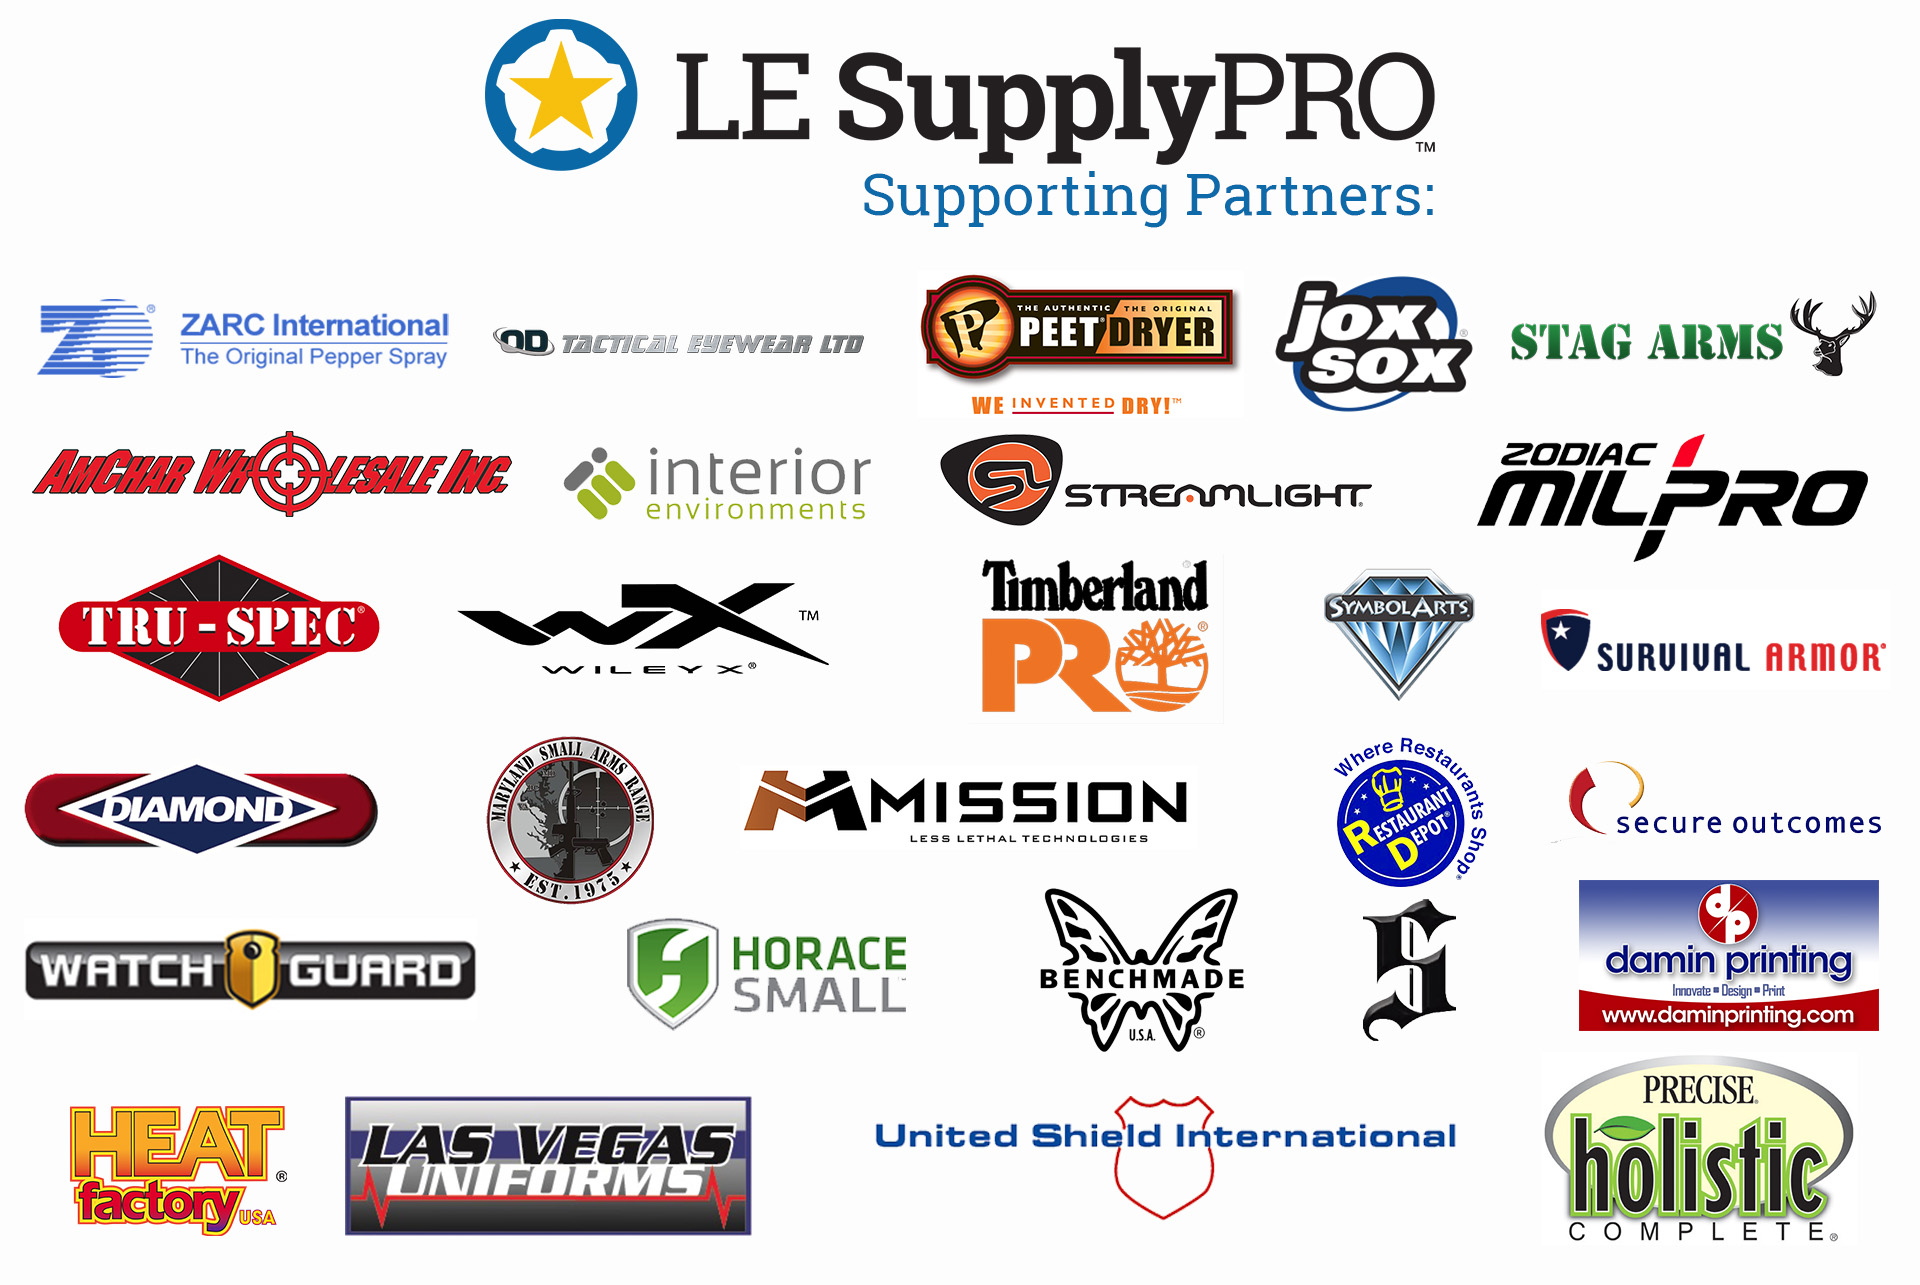 LE Supply PRO Supporting Manufacturers